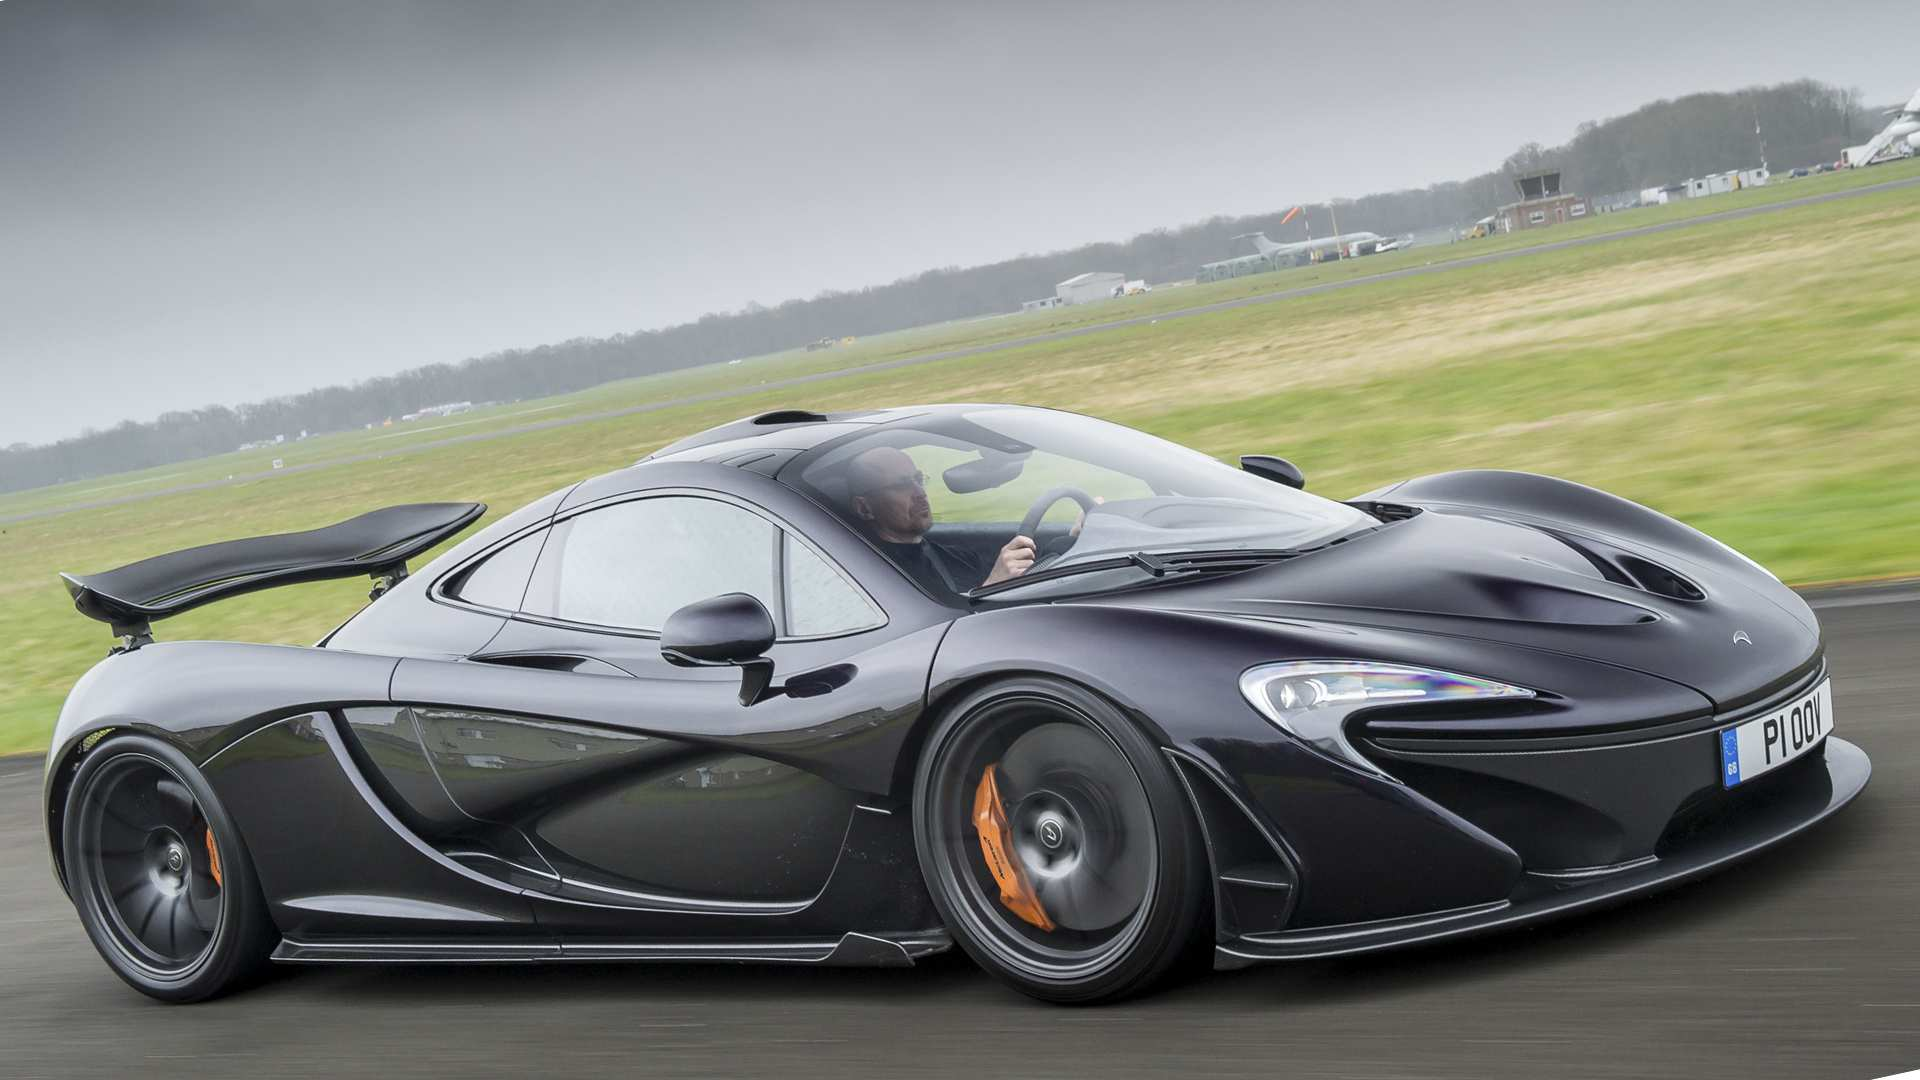 42 All New 2019 Mclaren P1 Price Model for 2019 Mclaren P1 Price